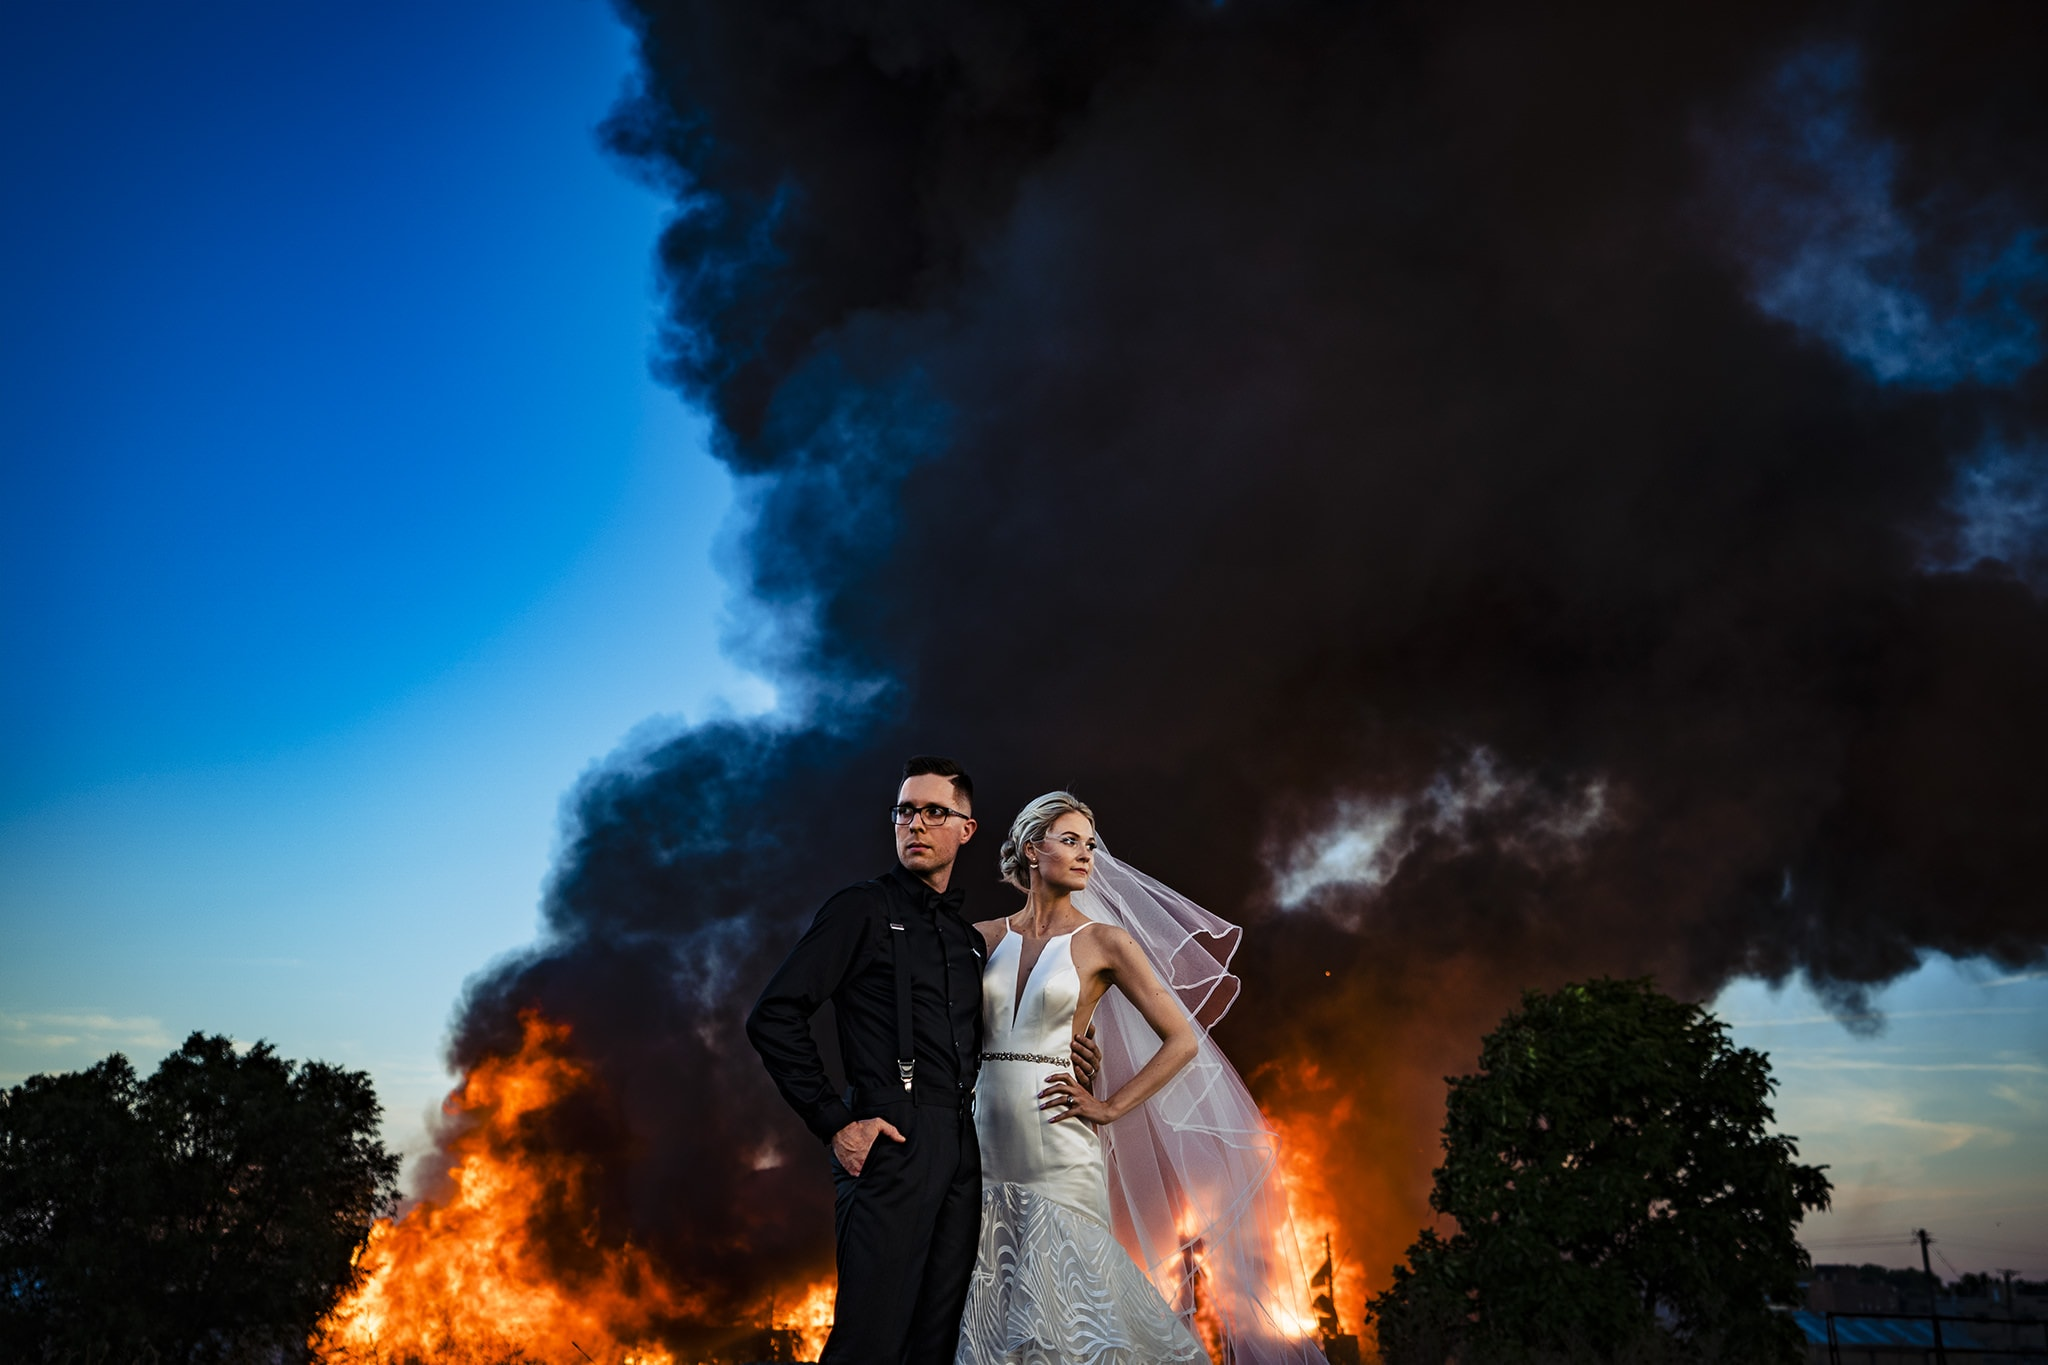 Studio 22 Photography - Megan Allen - Dayton Fire Wedding Photo - Top of the Market